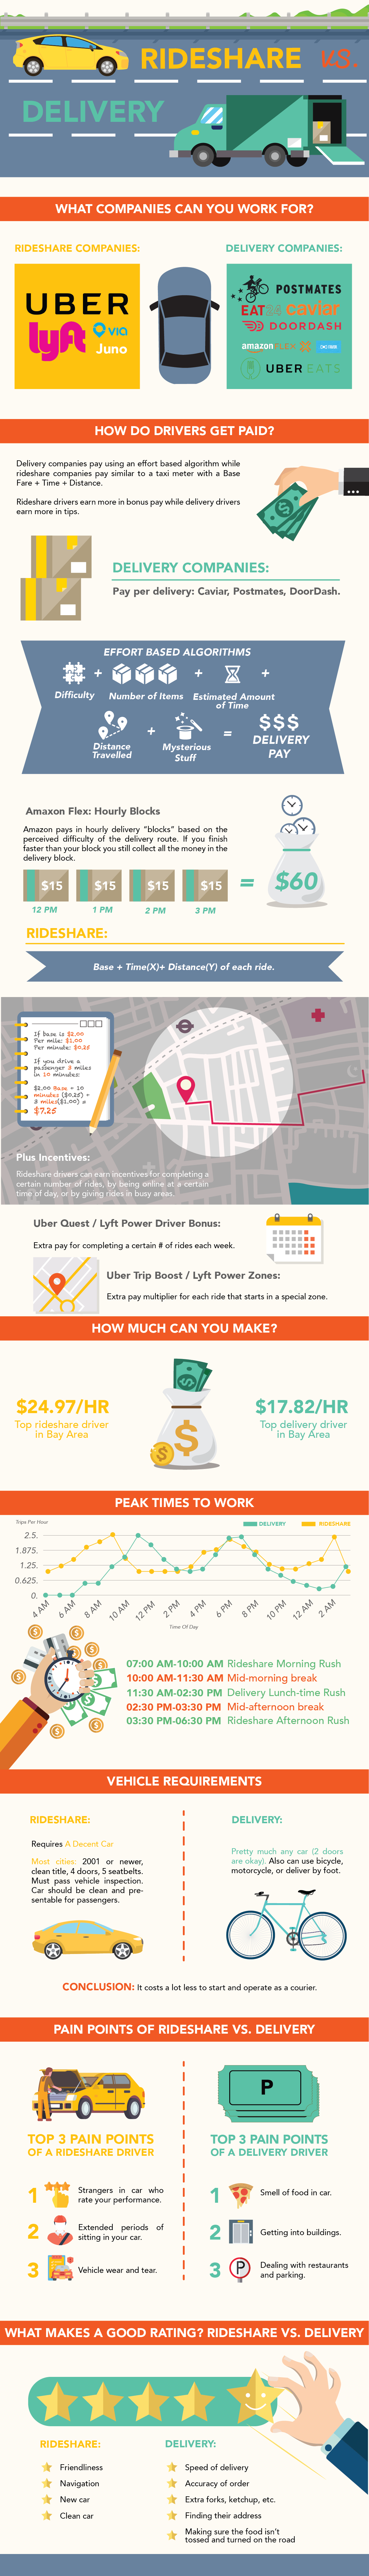 Rideshare vs Delivery Compared [Infographic]